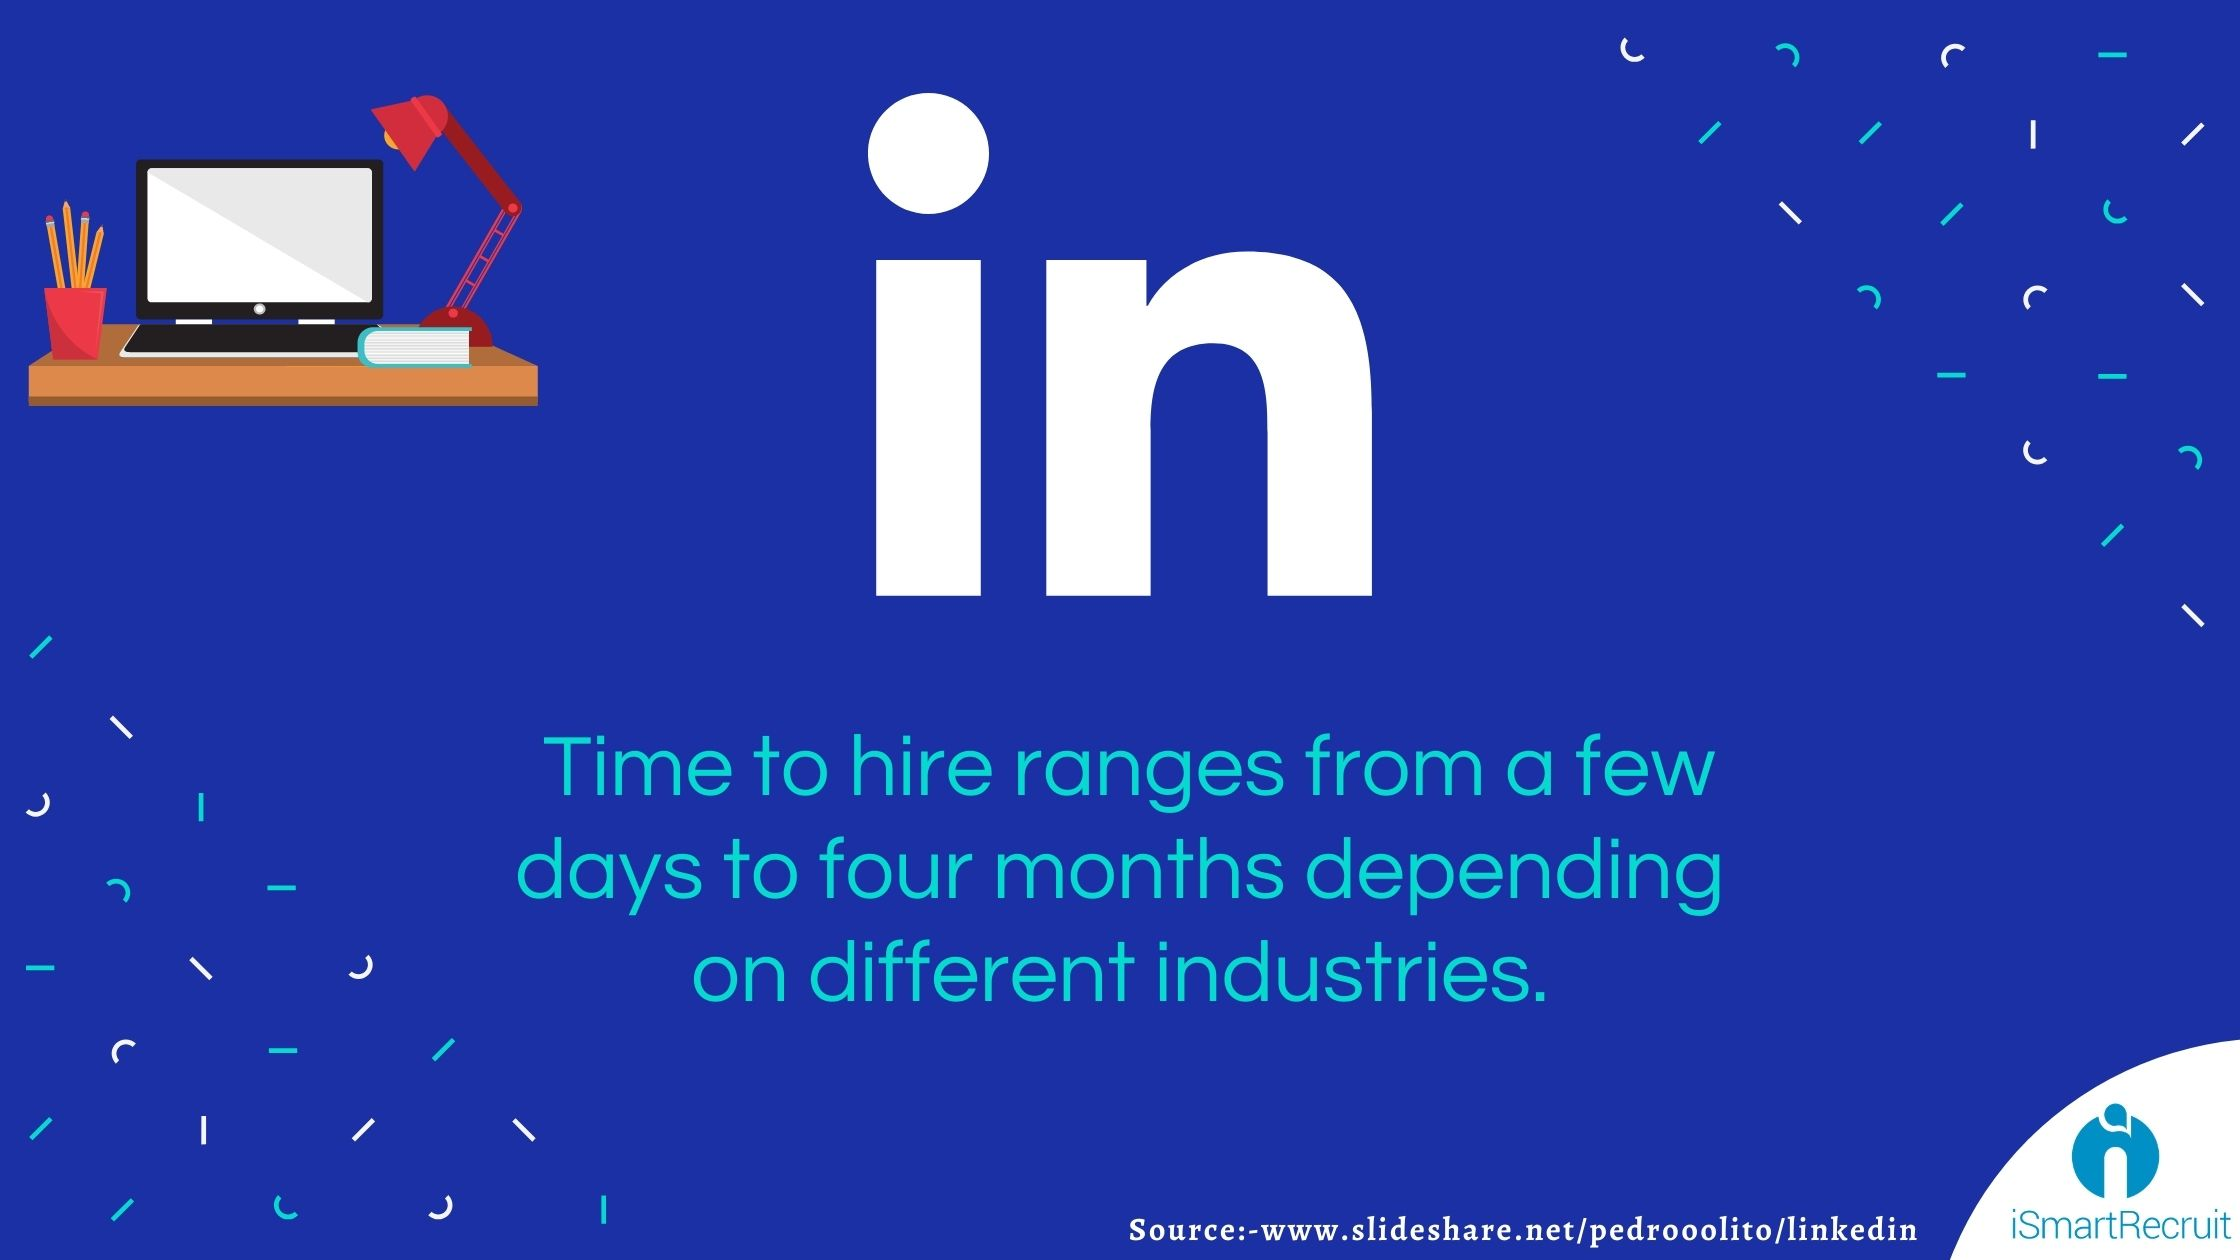 According to LinkedIn, the time to hire ranges from a few days to four months depending on different industries